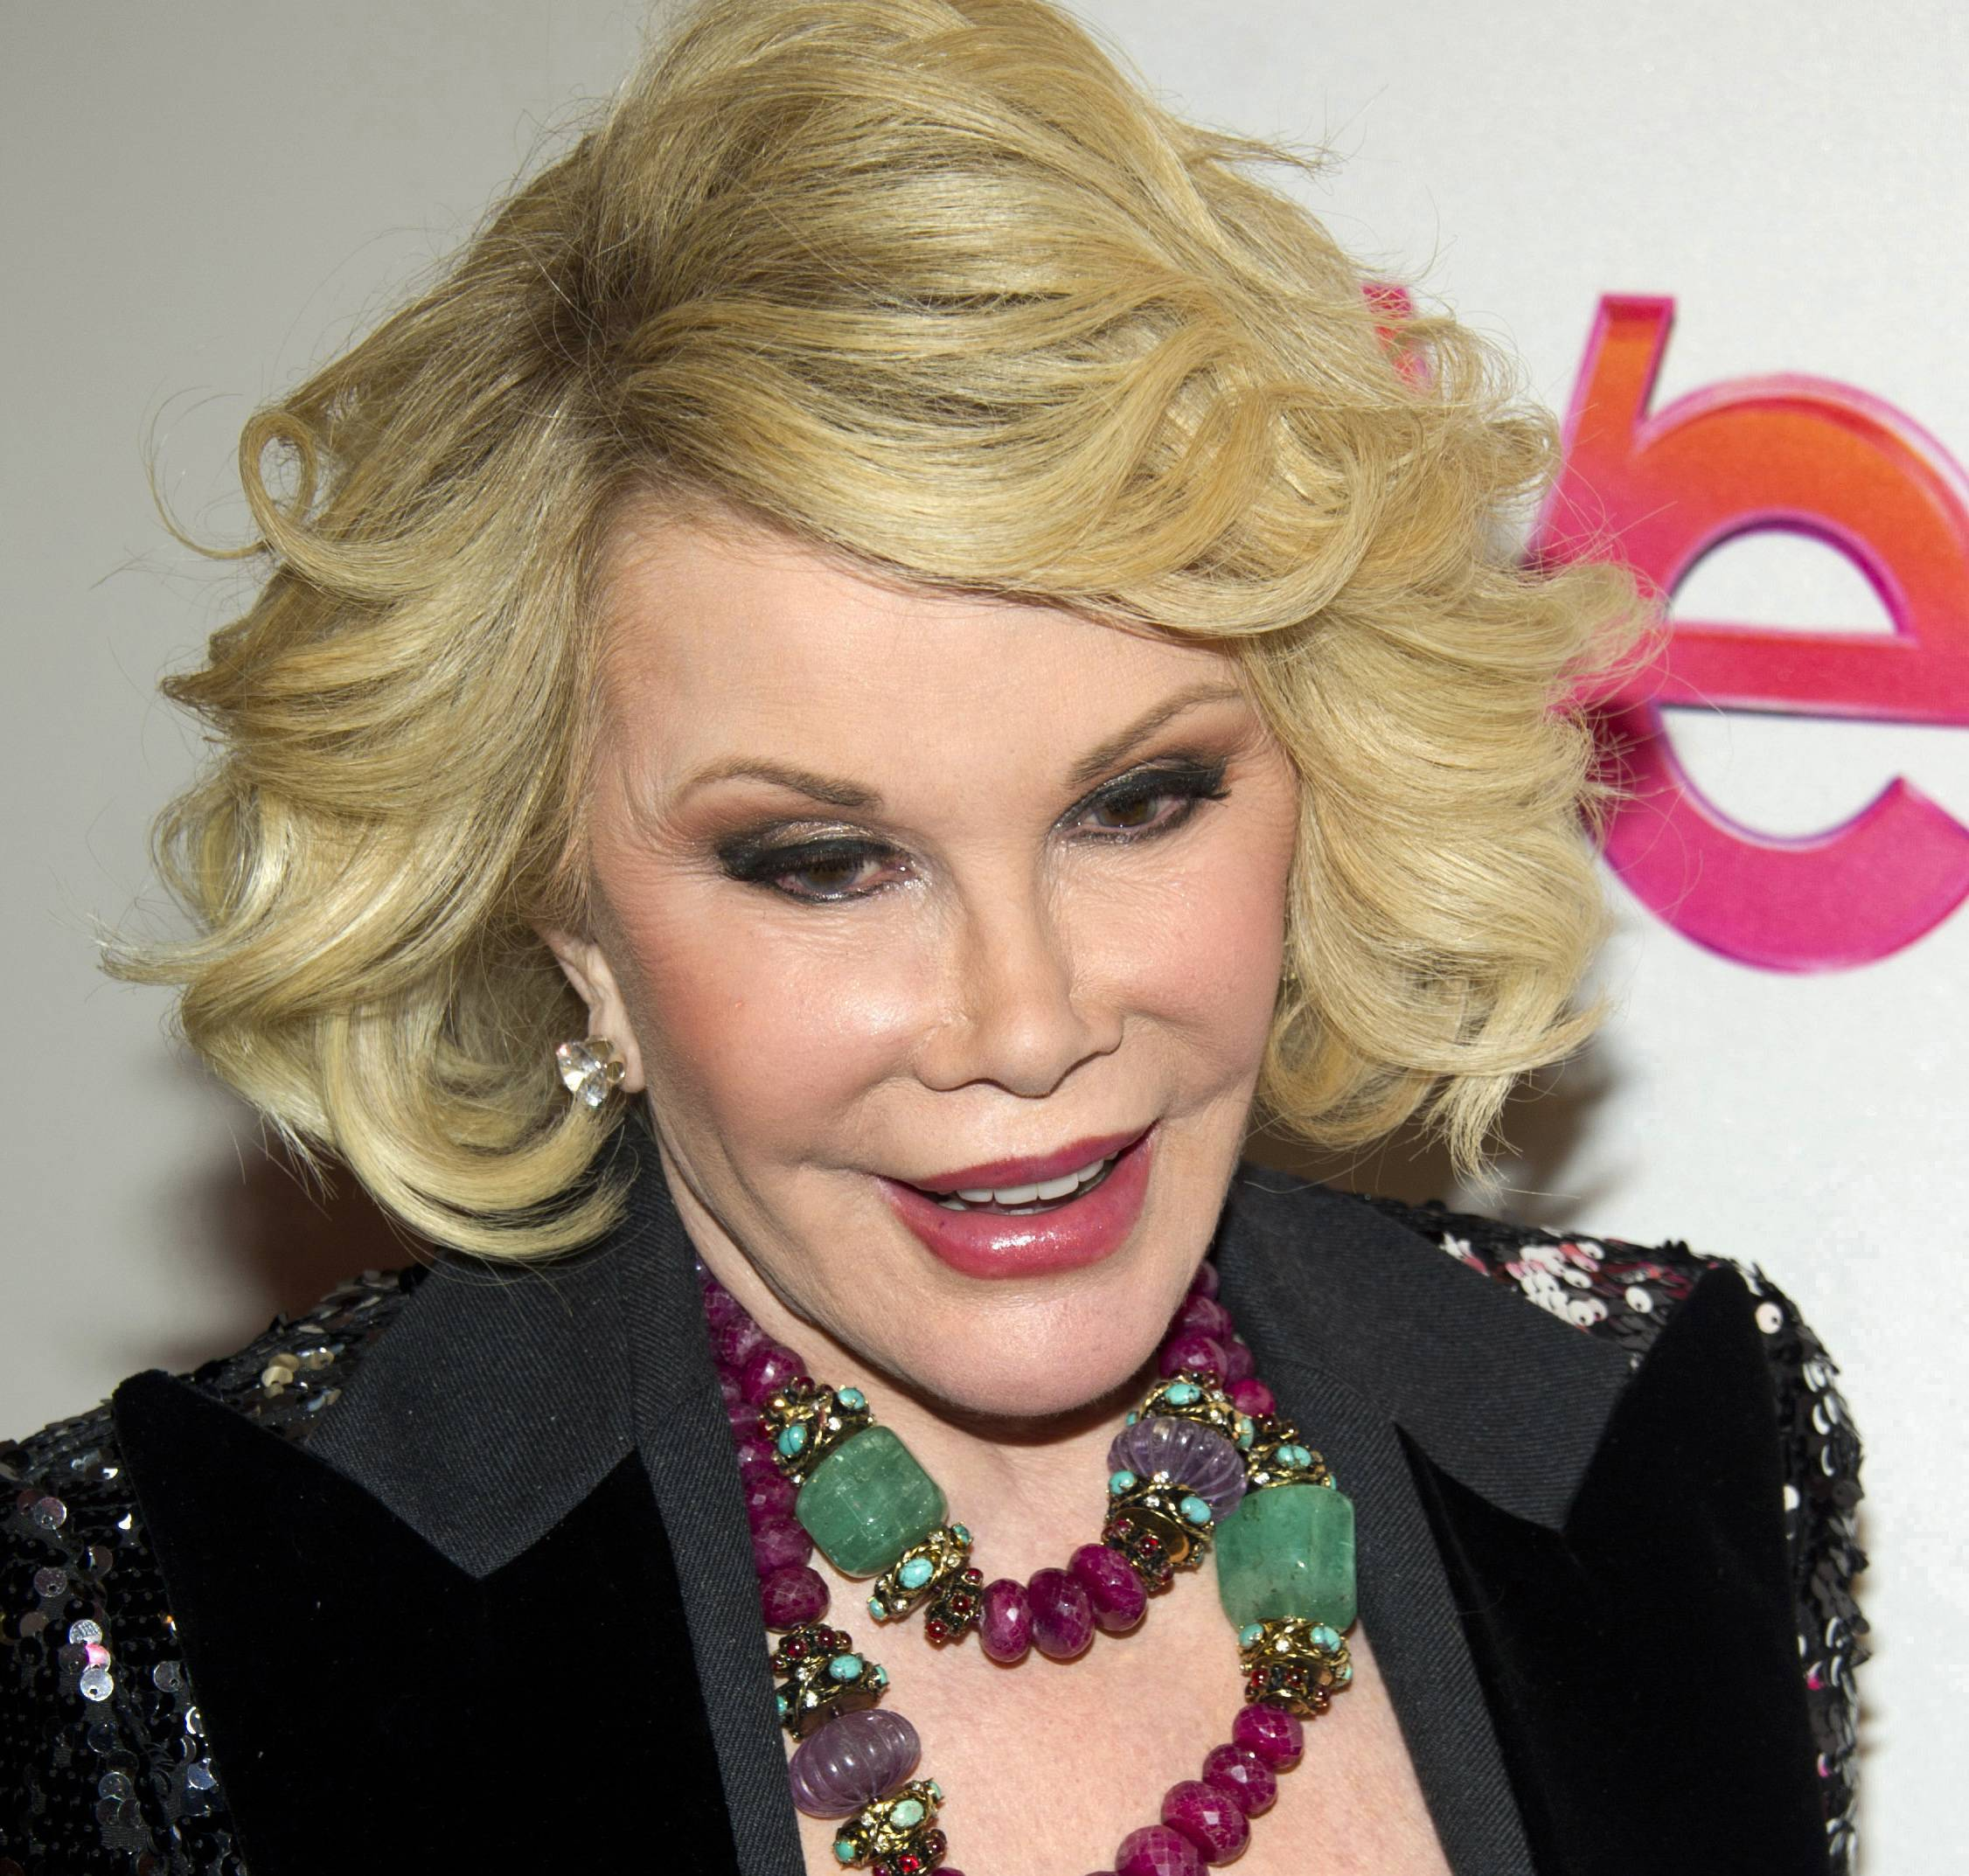 Joan Rivers remained in a New York City hospital Friday after she was rushed from a doctor's office when she went into cardiac arrest Thursday morning, hospital officials said.